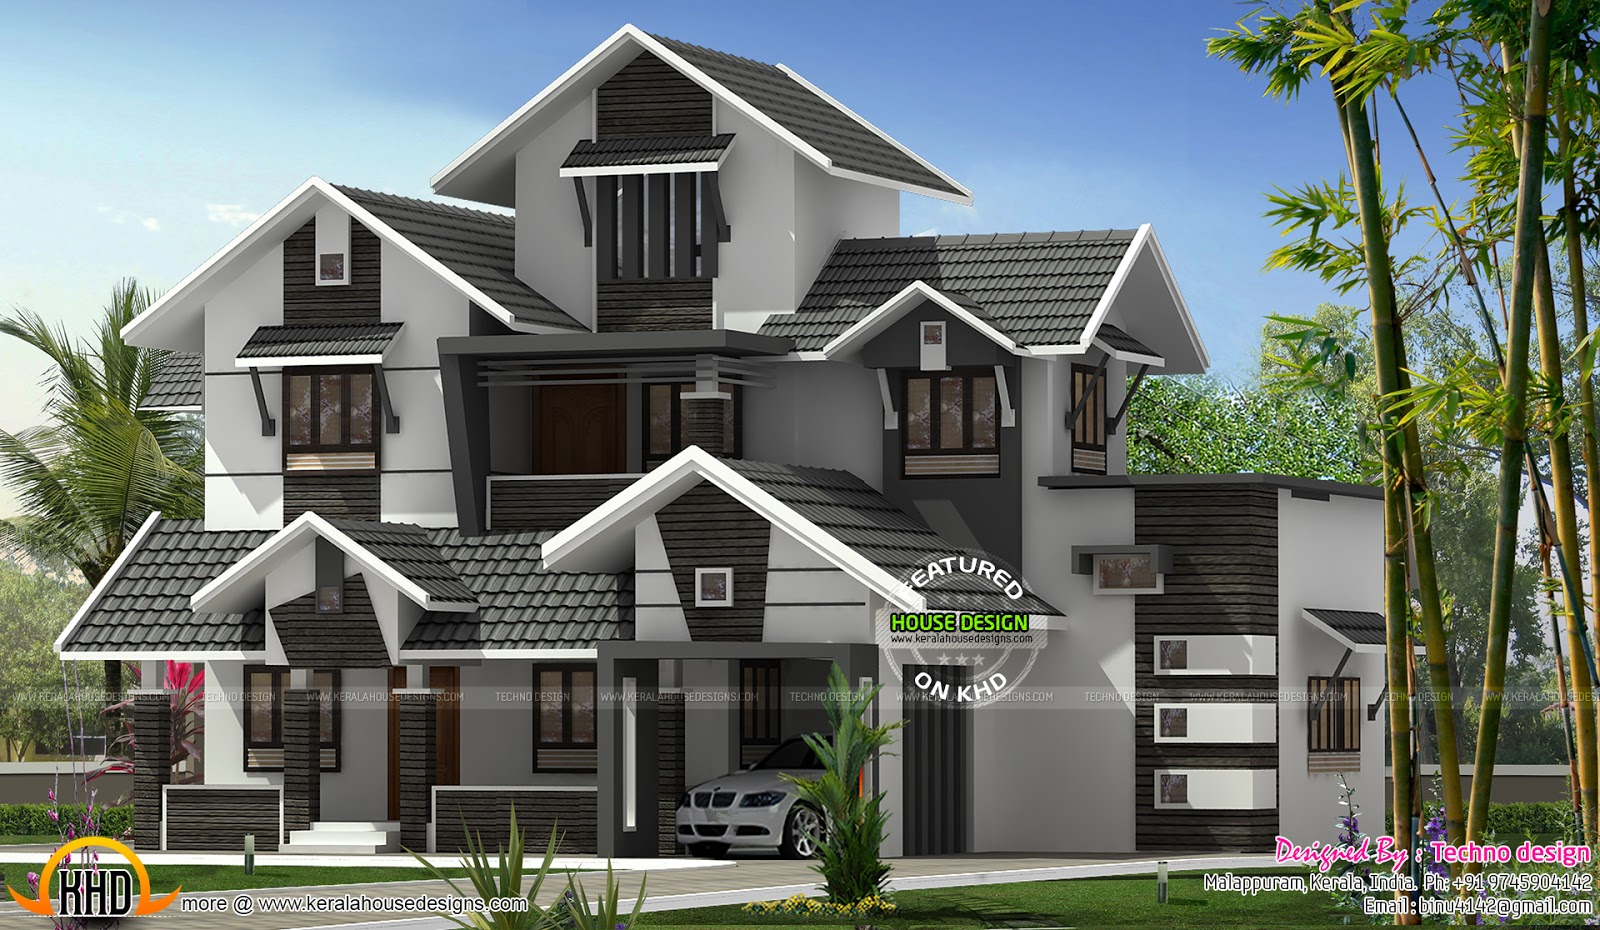 Modern kerala home design kerala home design and floor plans for Home designs for kerala